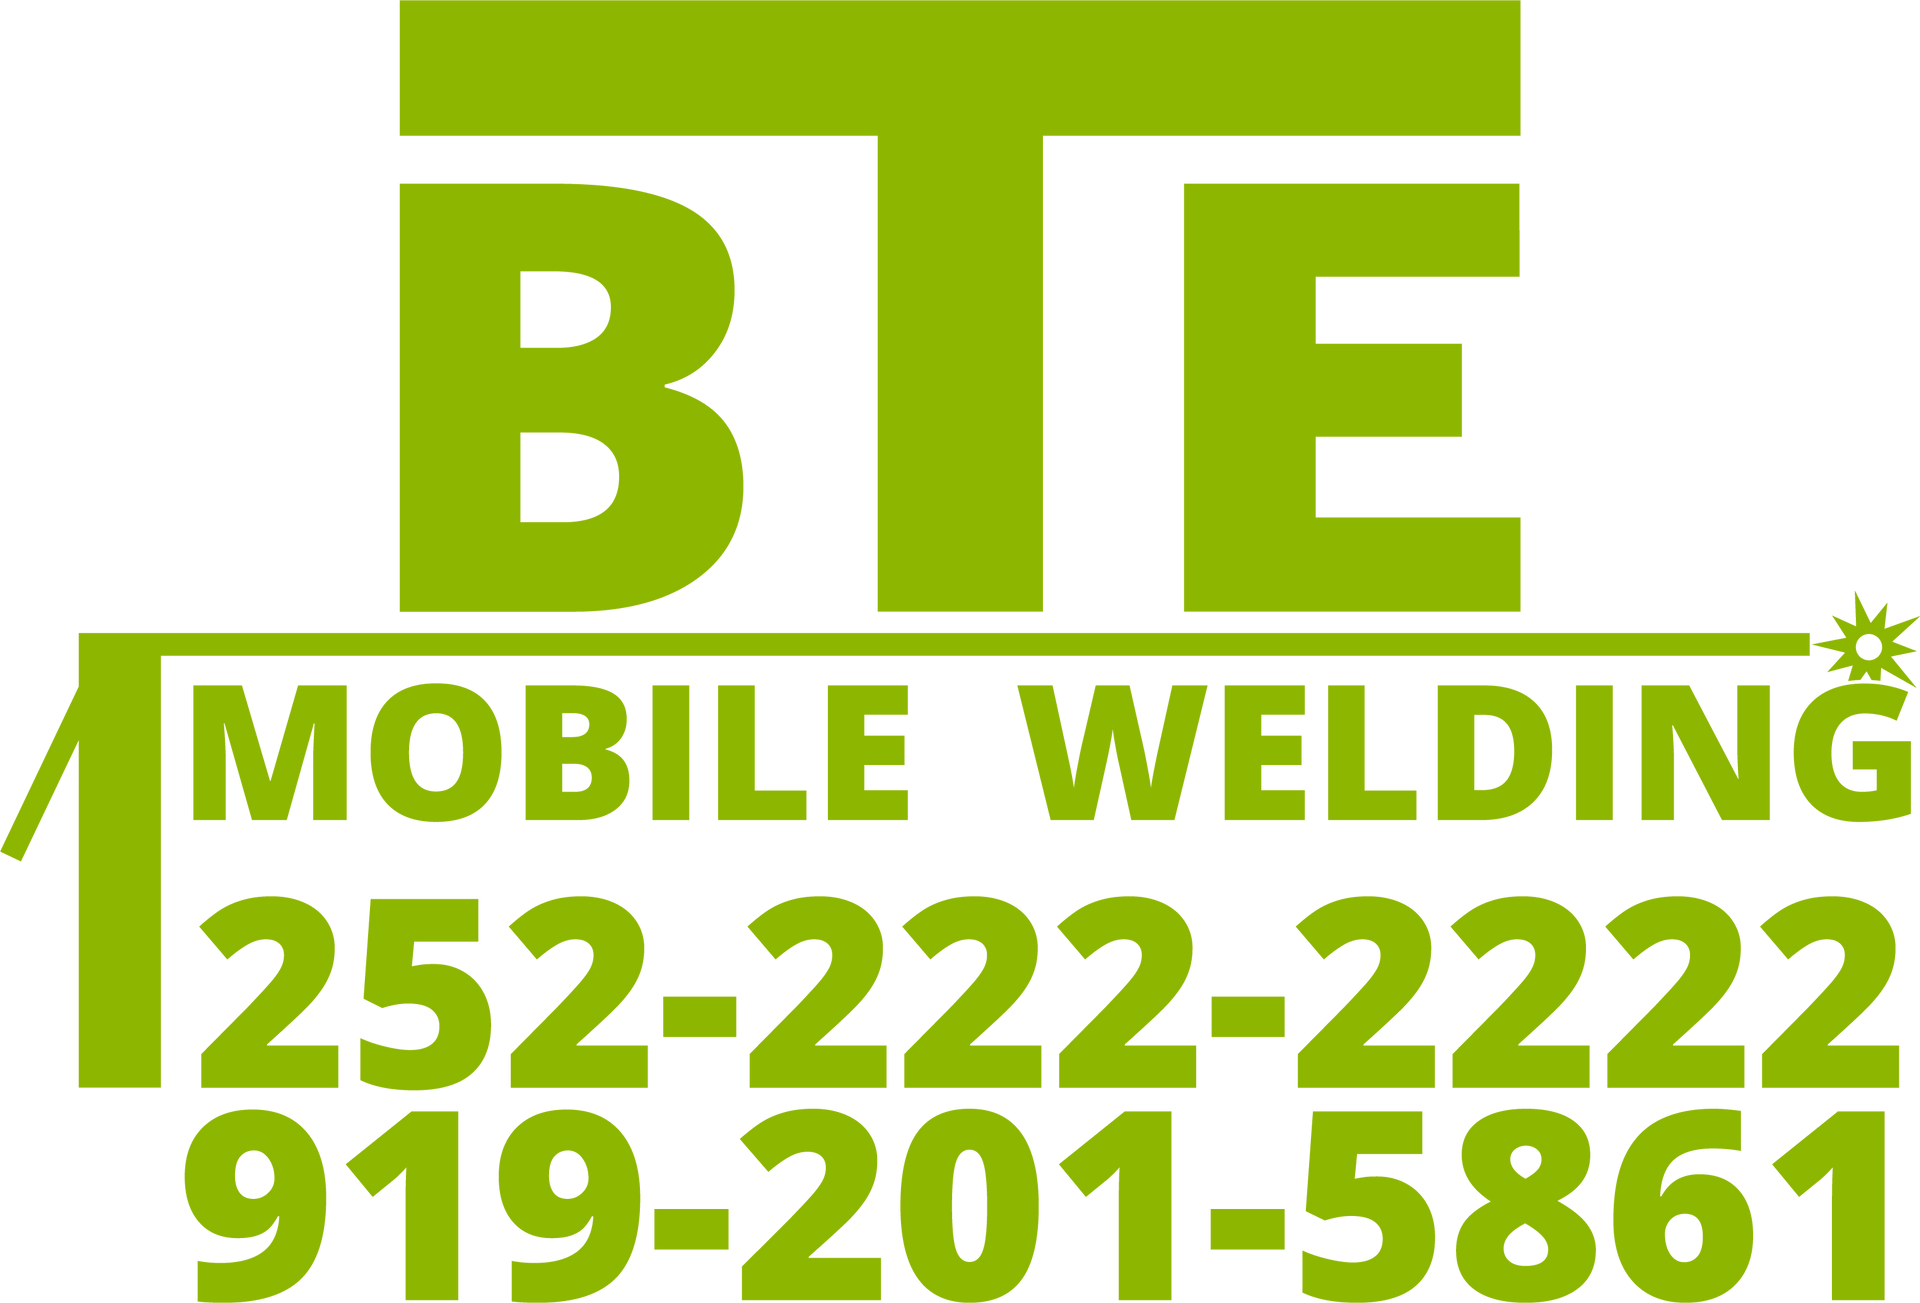 BTE Mobile Welding